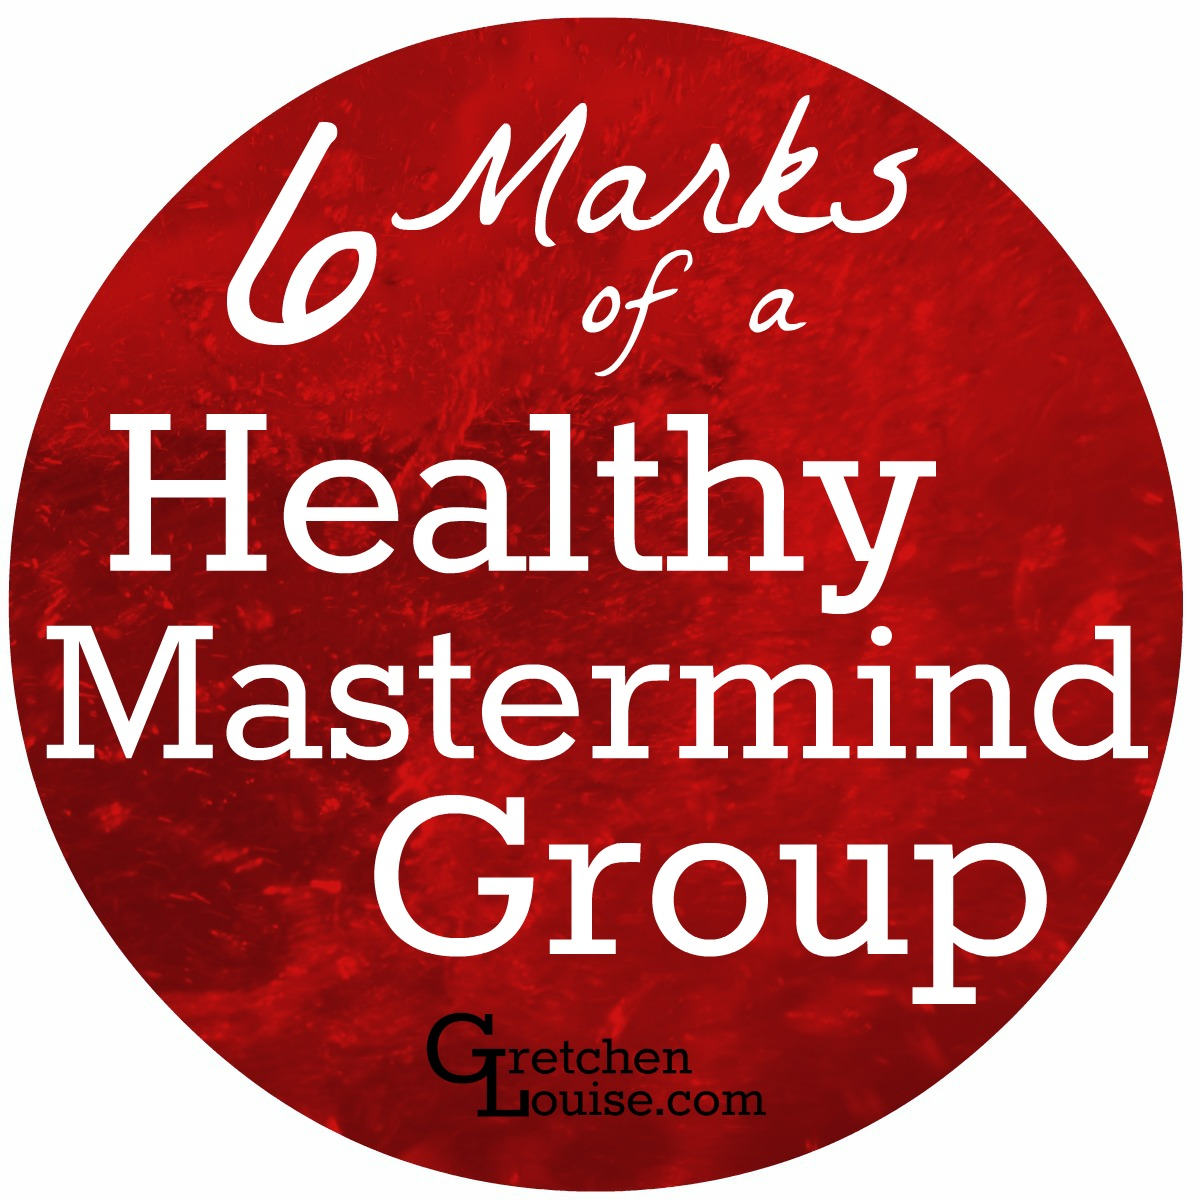 6 Marks of a Healthy Mastermind Group